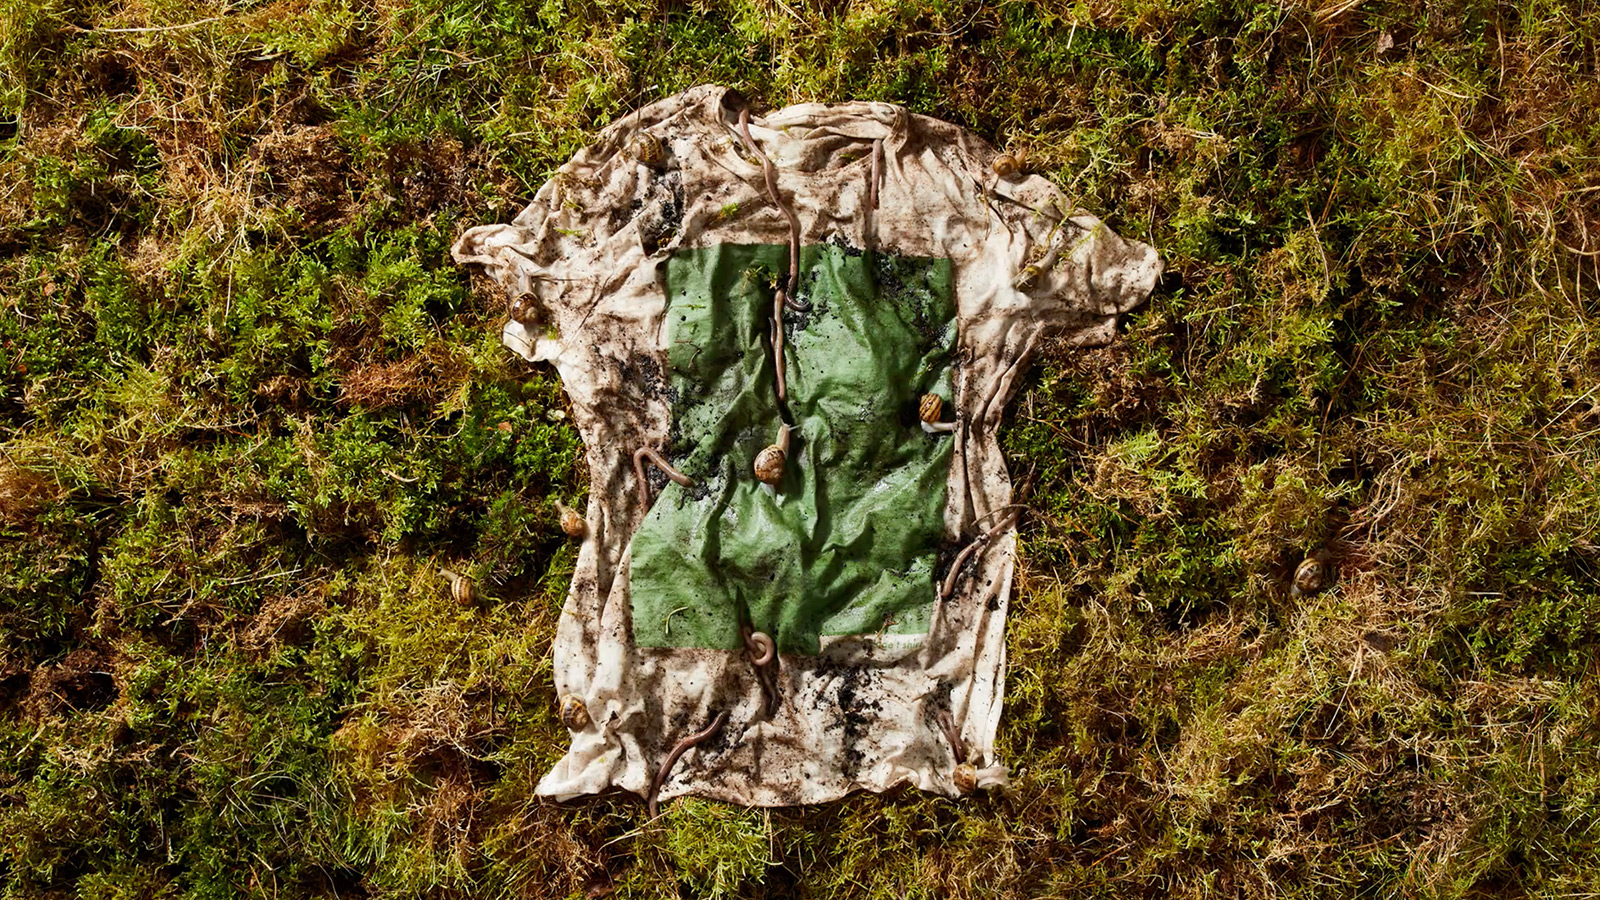 Vollebak Plant and Algae T Shirt